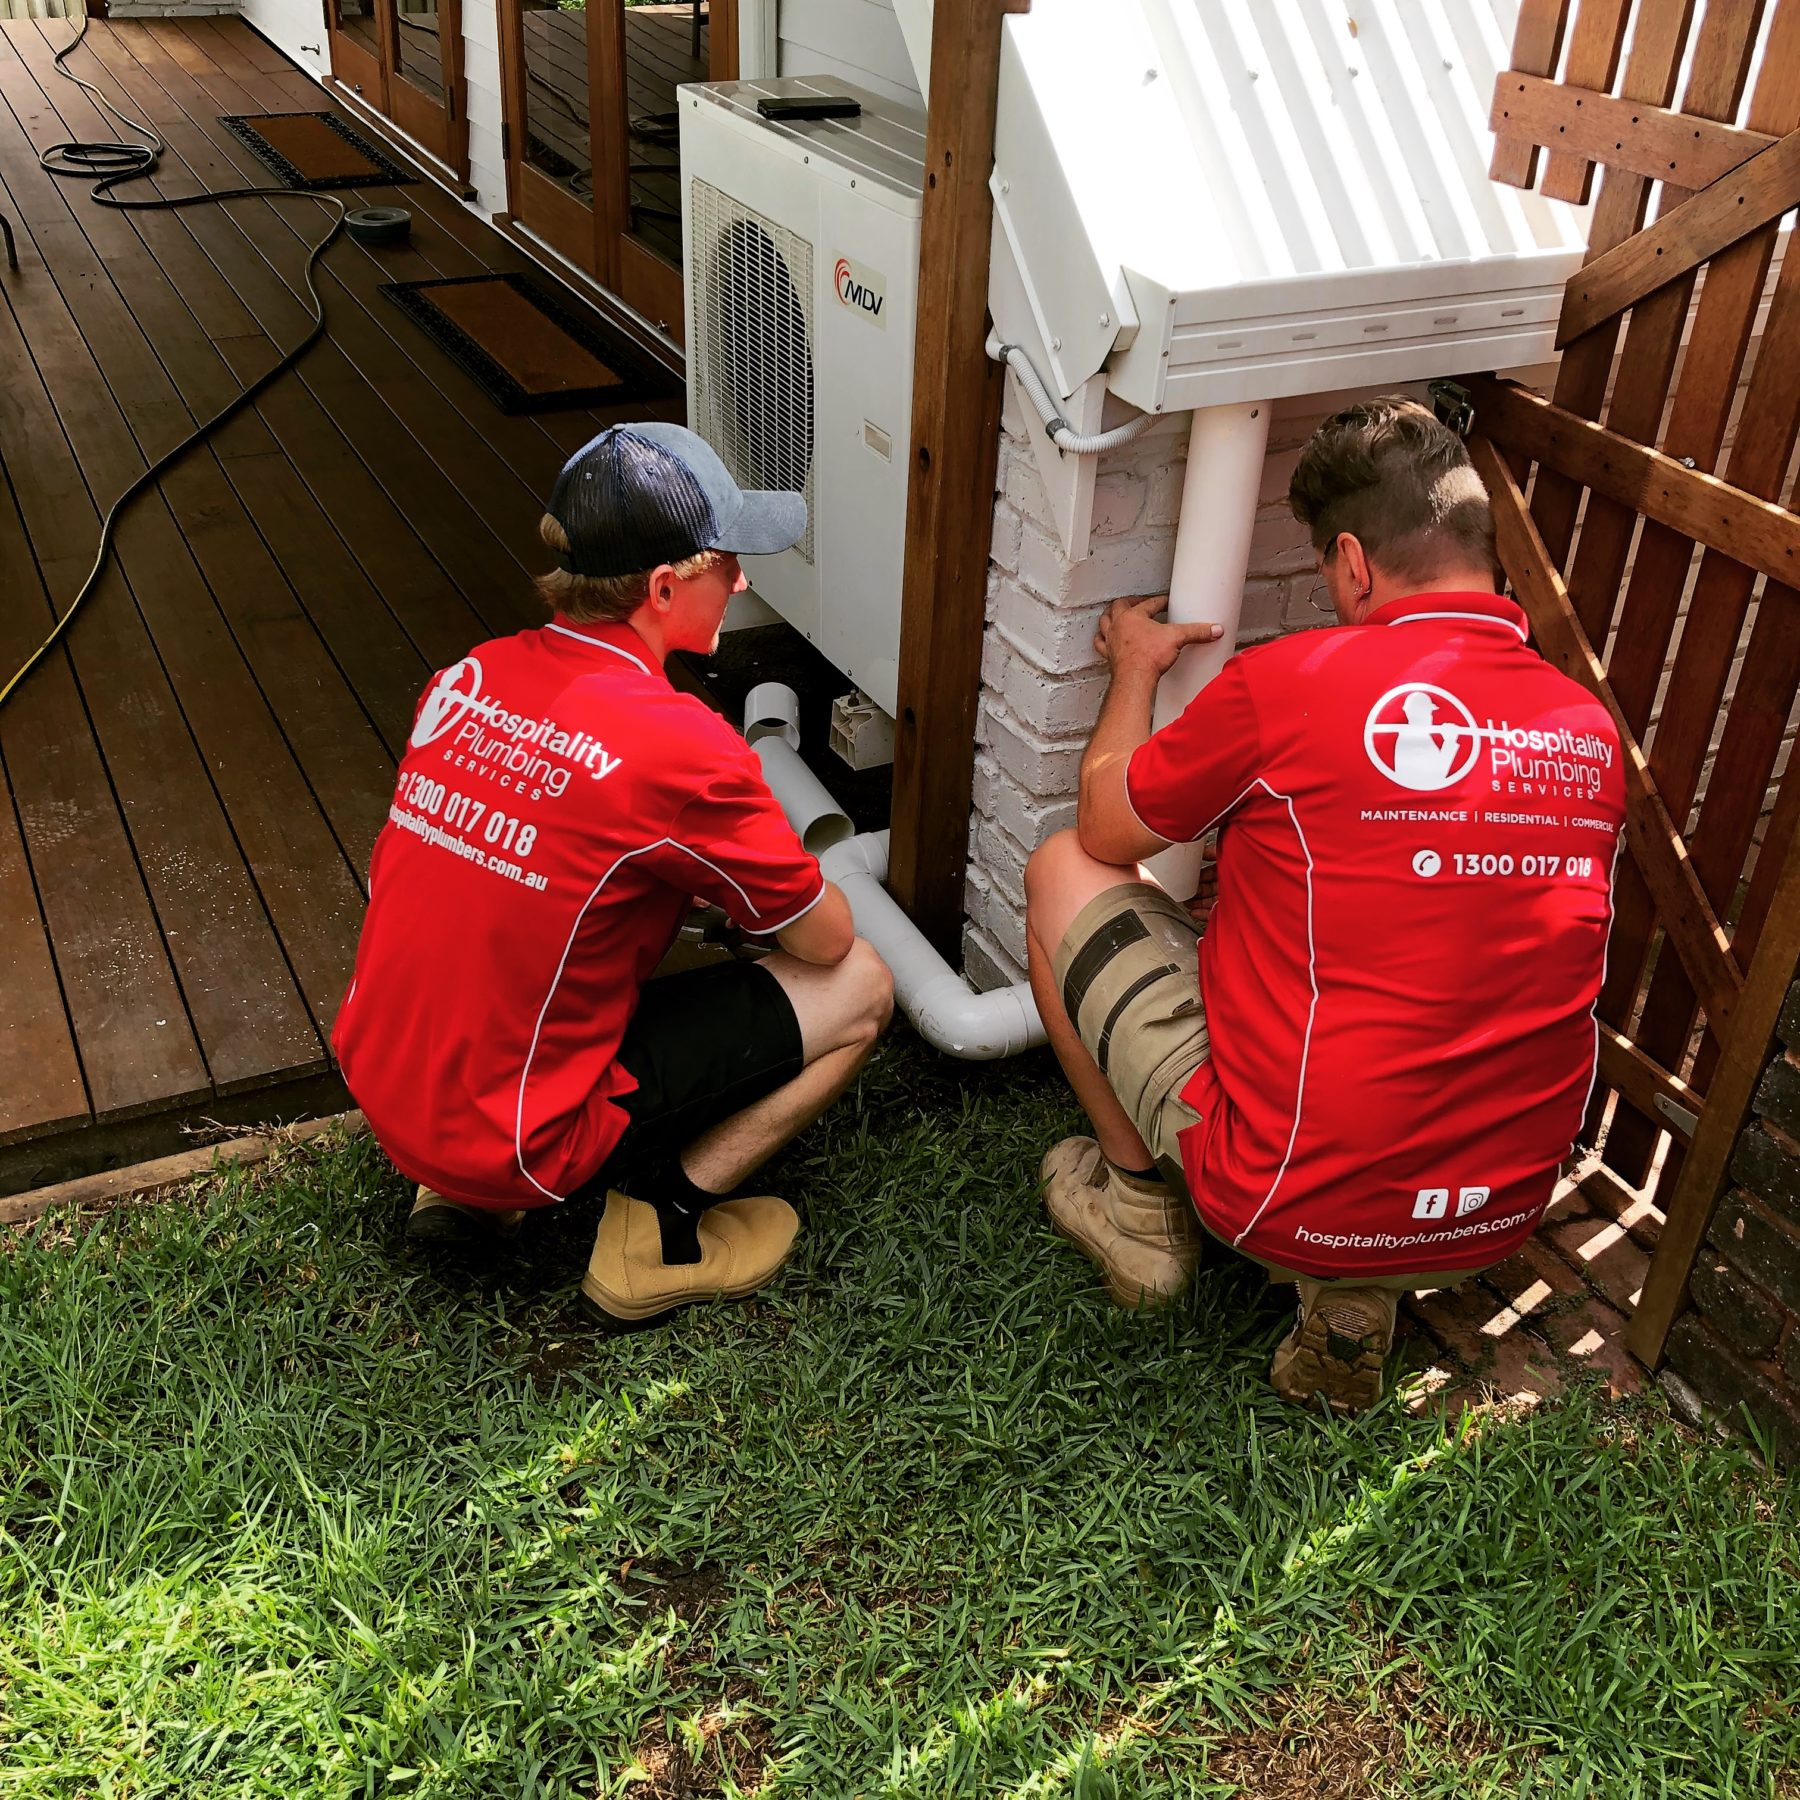 24 Hours a day, 7 days a week Emergency plumbing service.